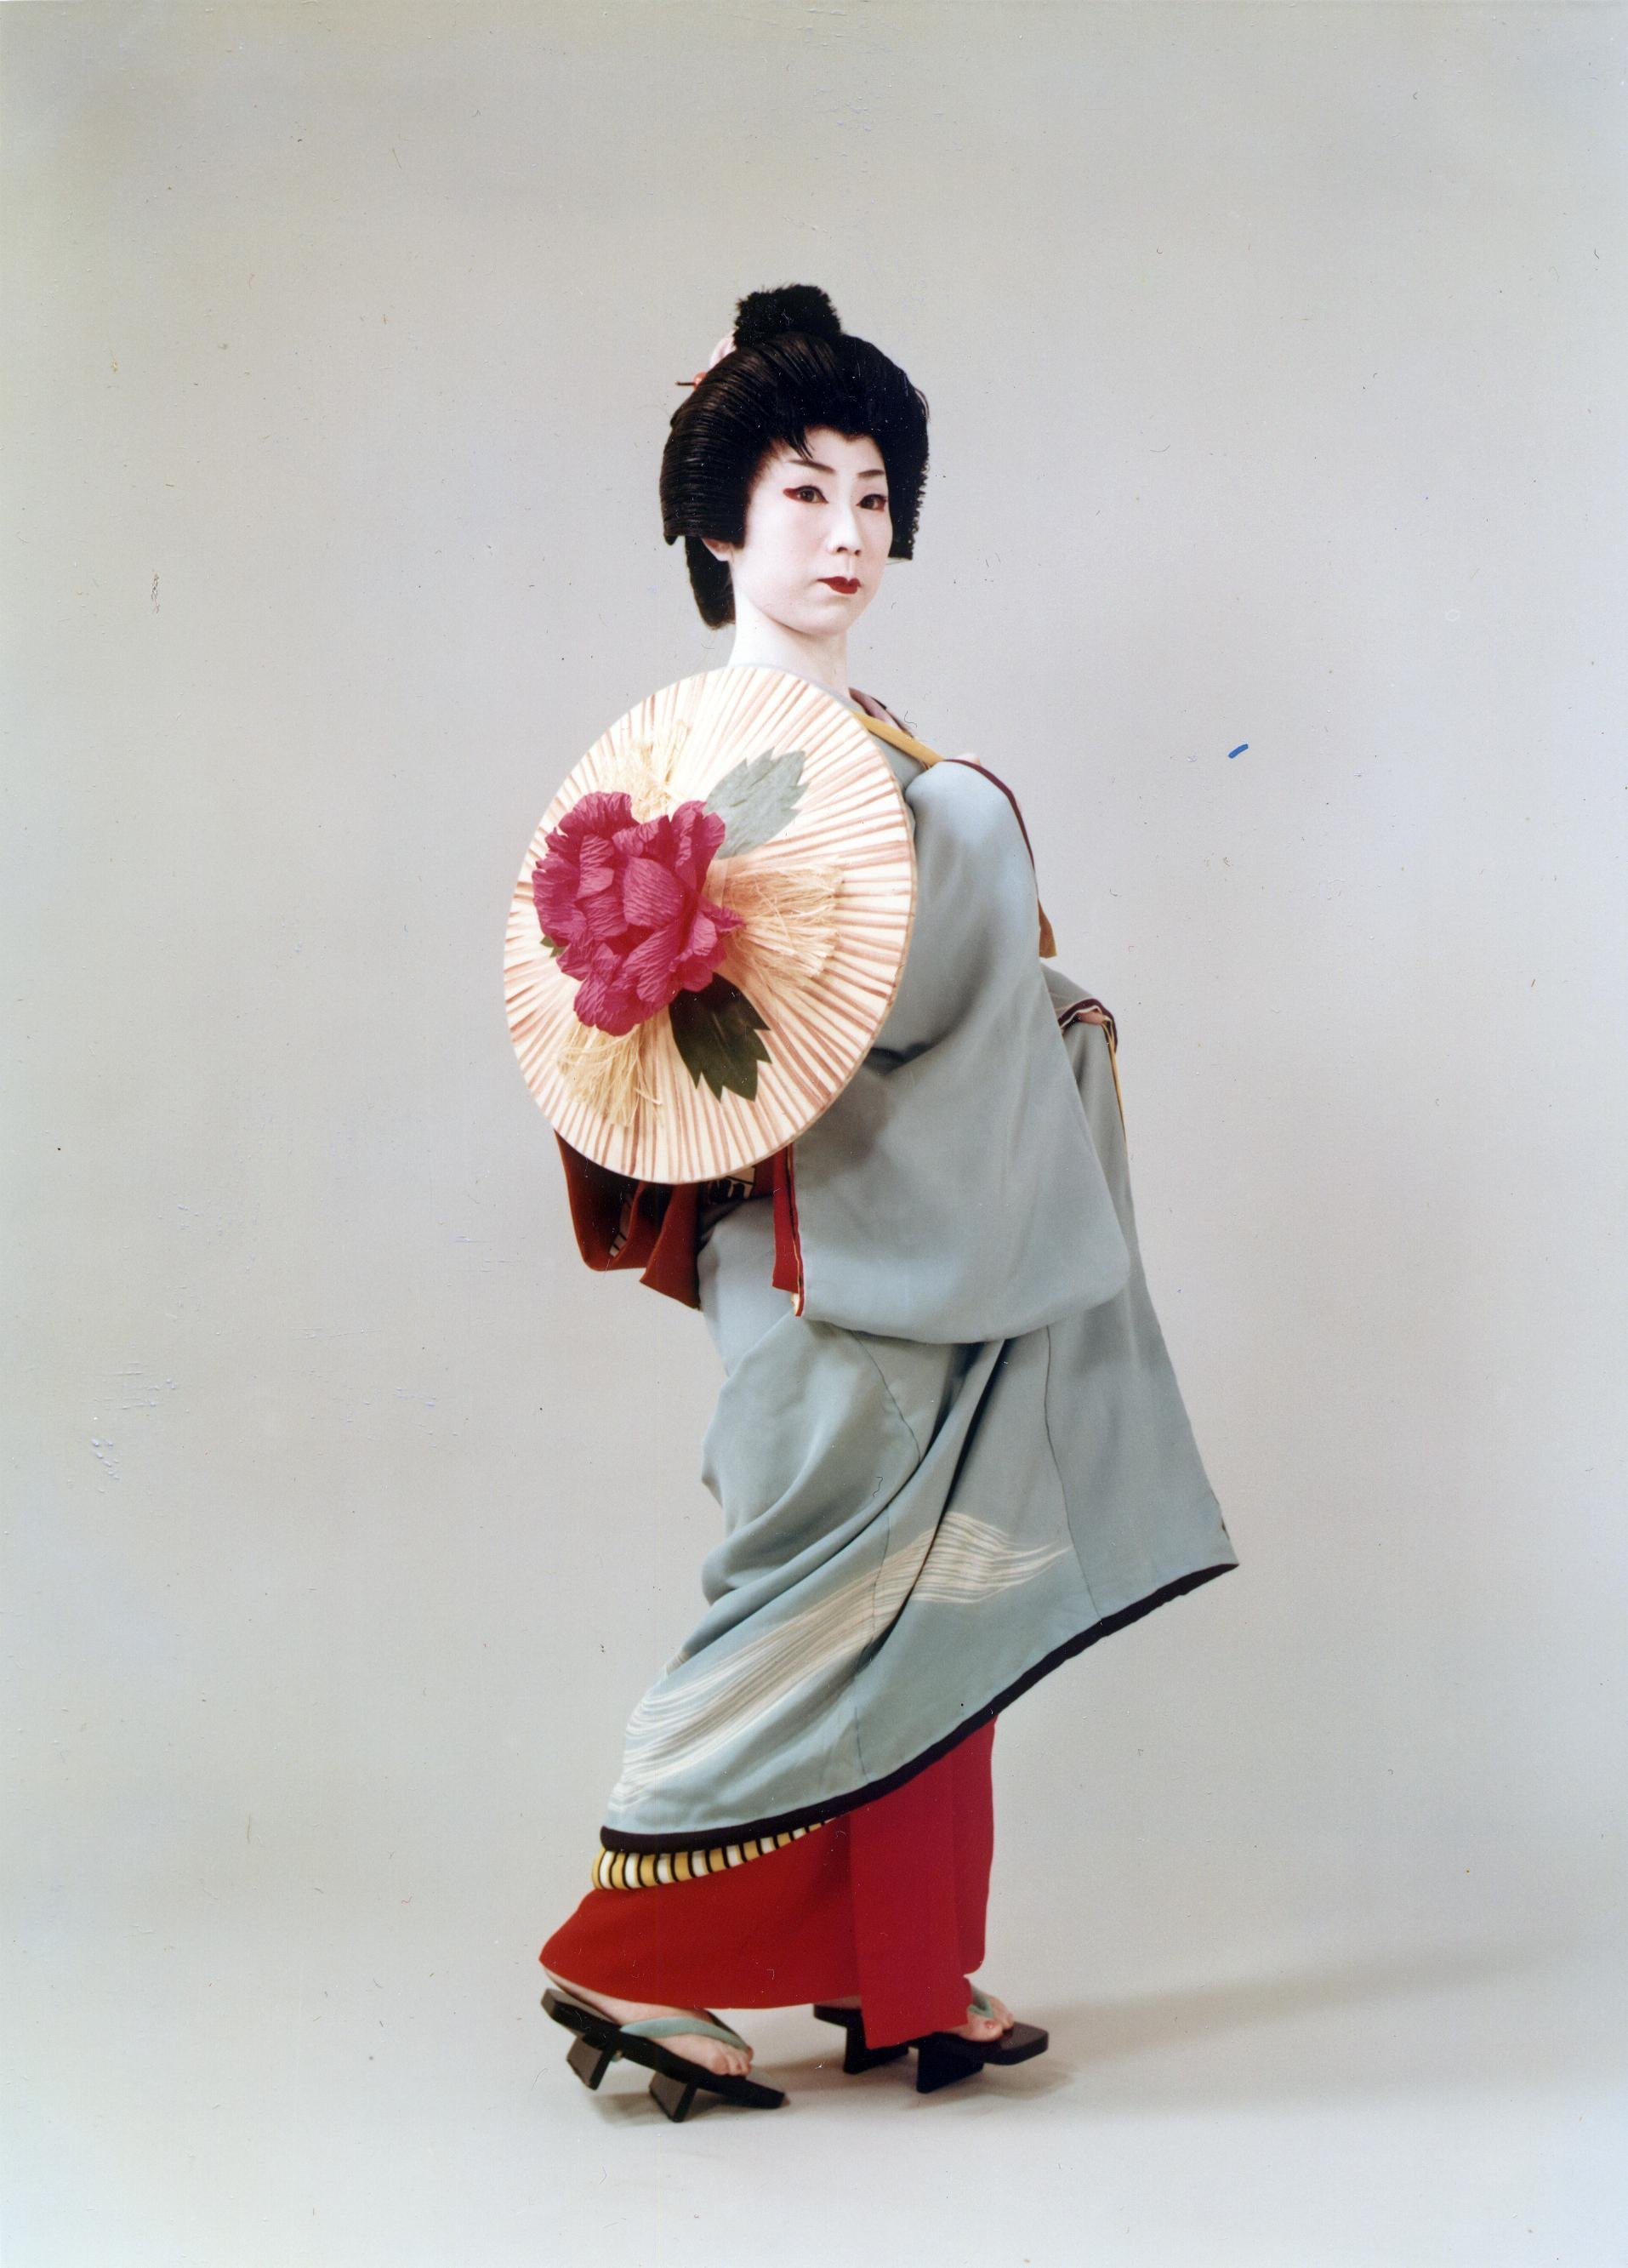 Think, that the life of geishas apologise, but